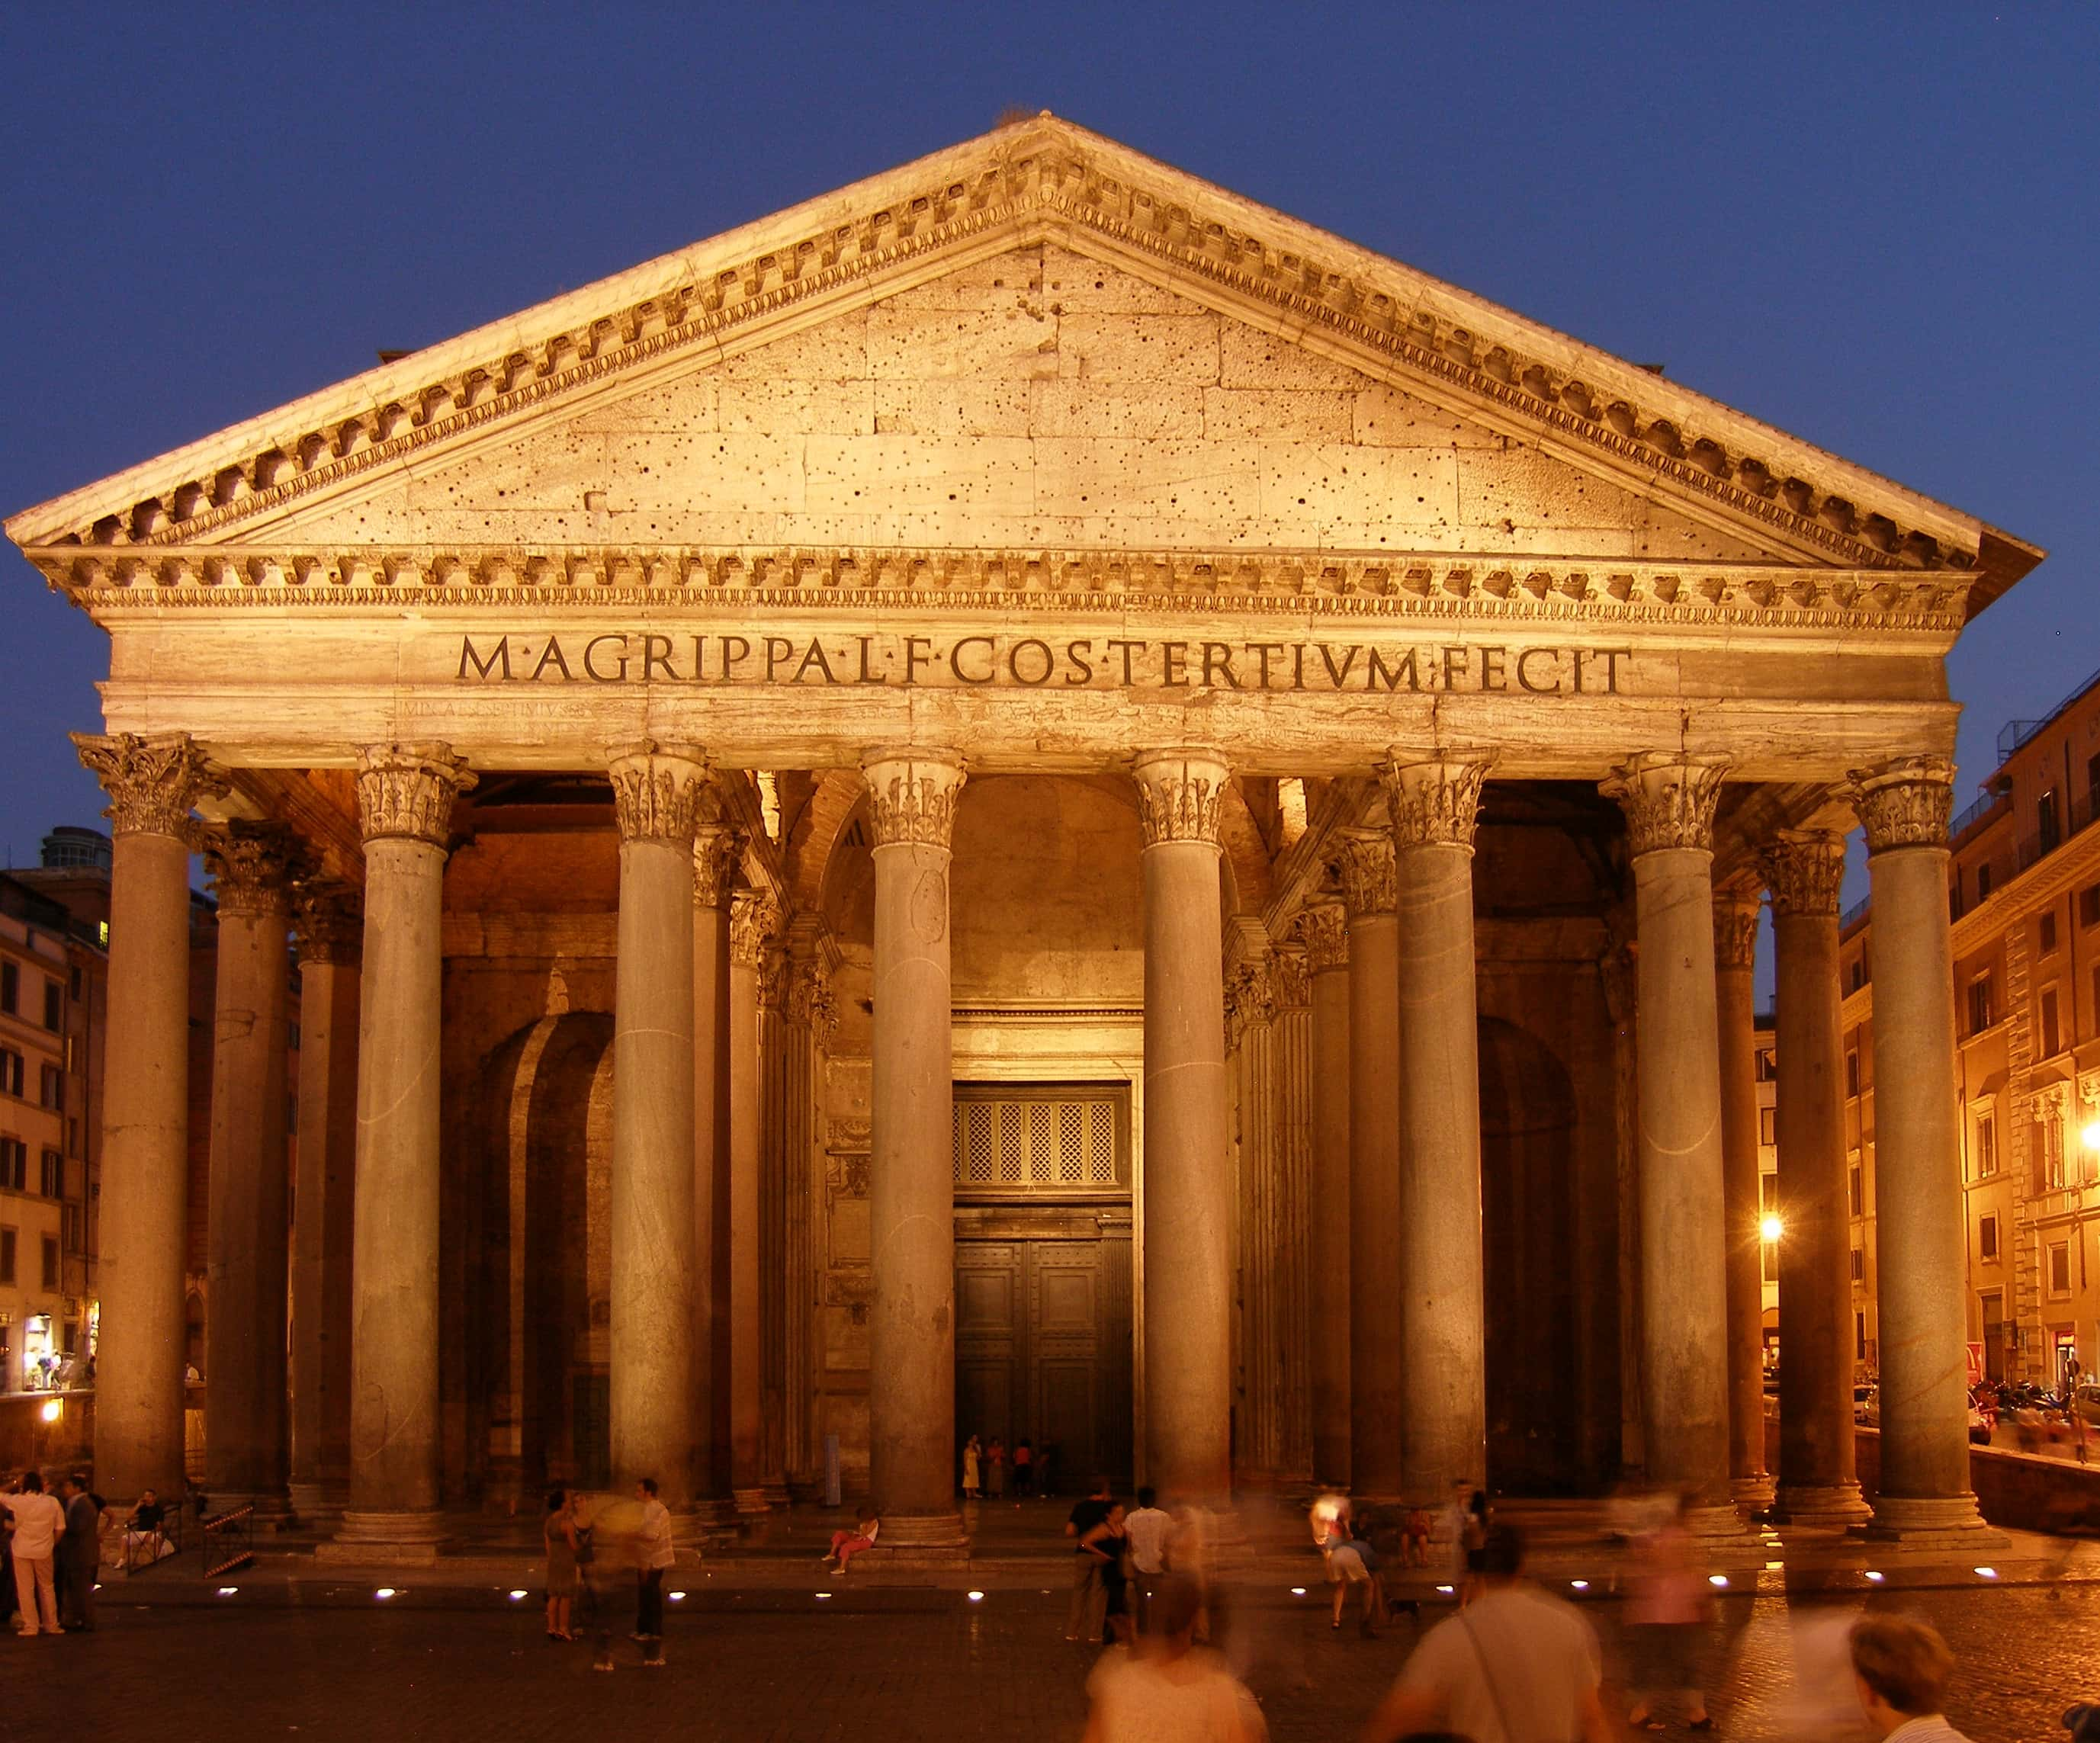 Westbury's Pick: The Pantheon